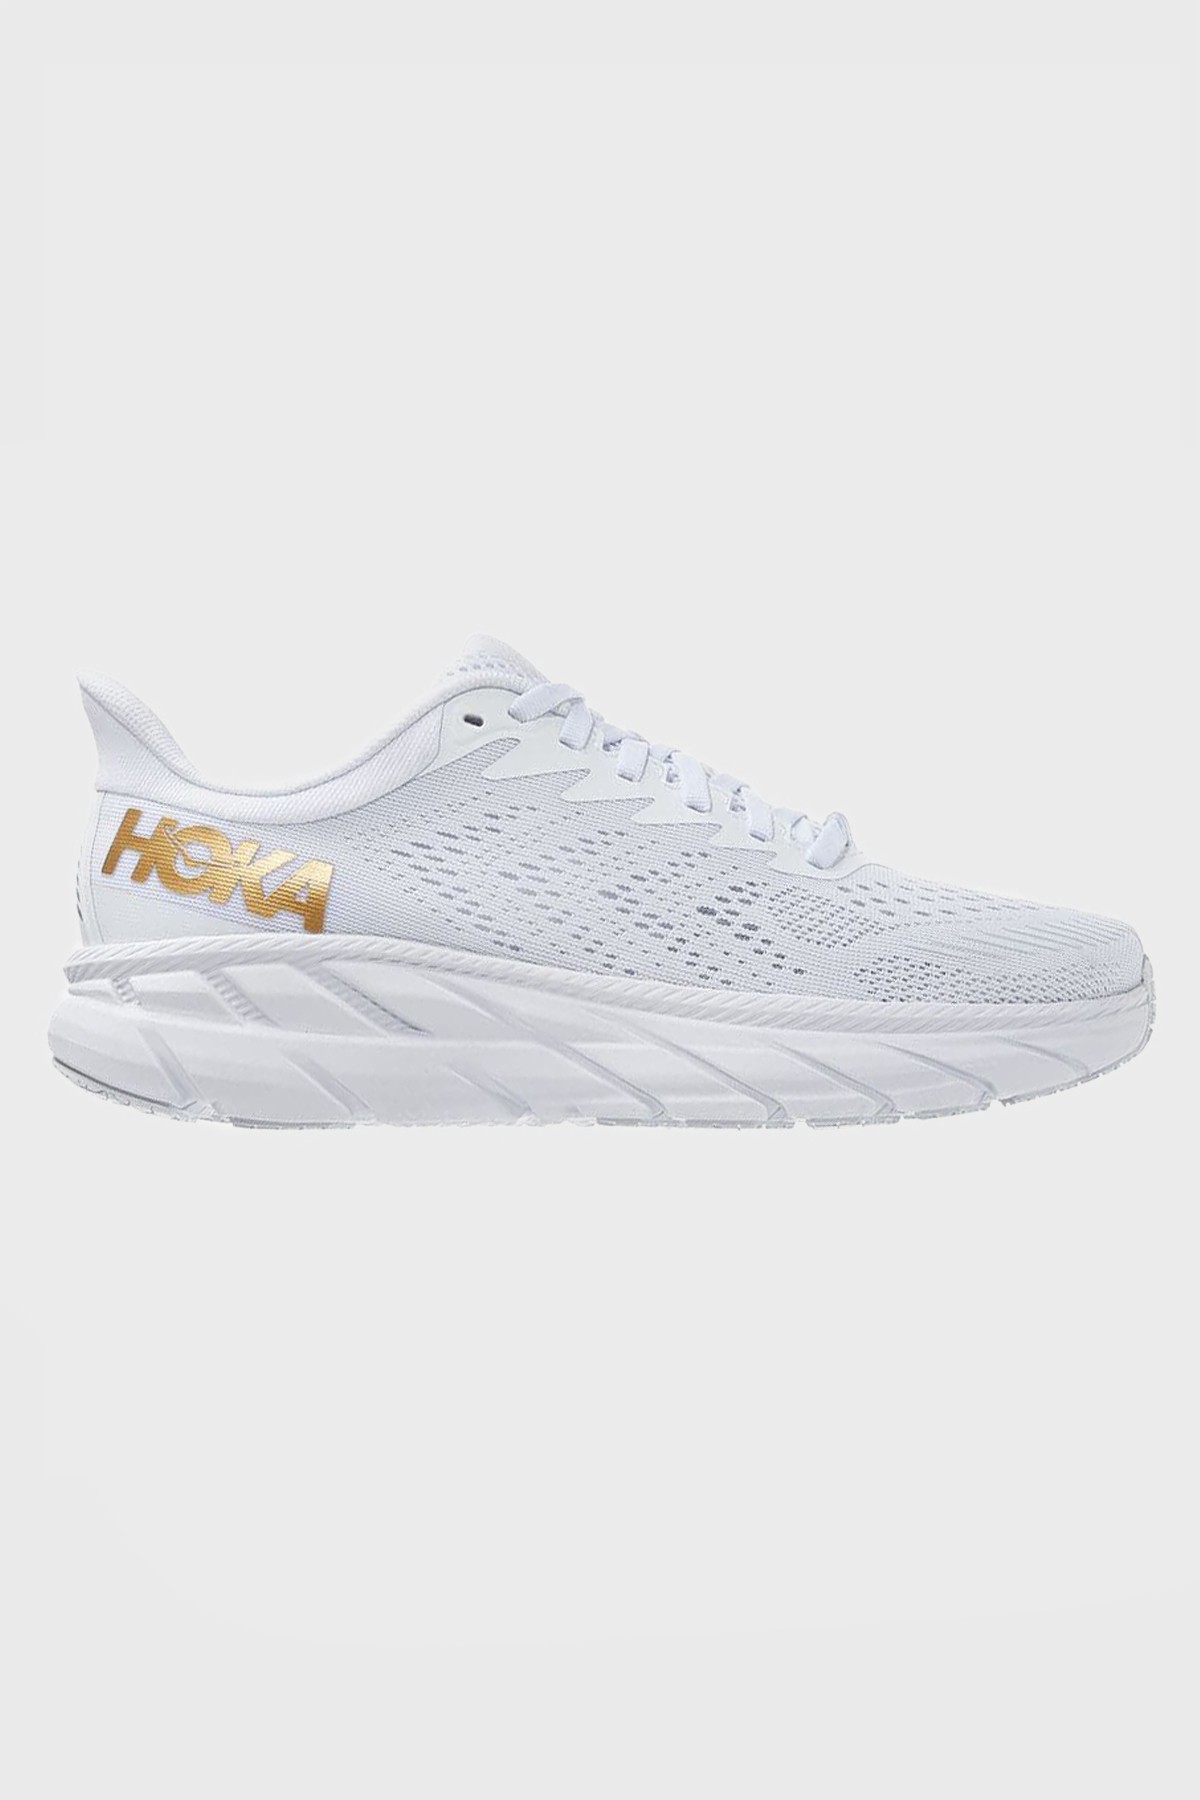 Hoka One One - Clifton 7 - White Gold